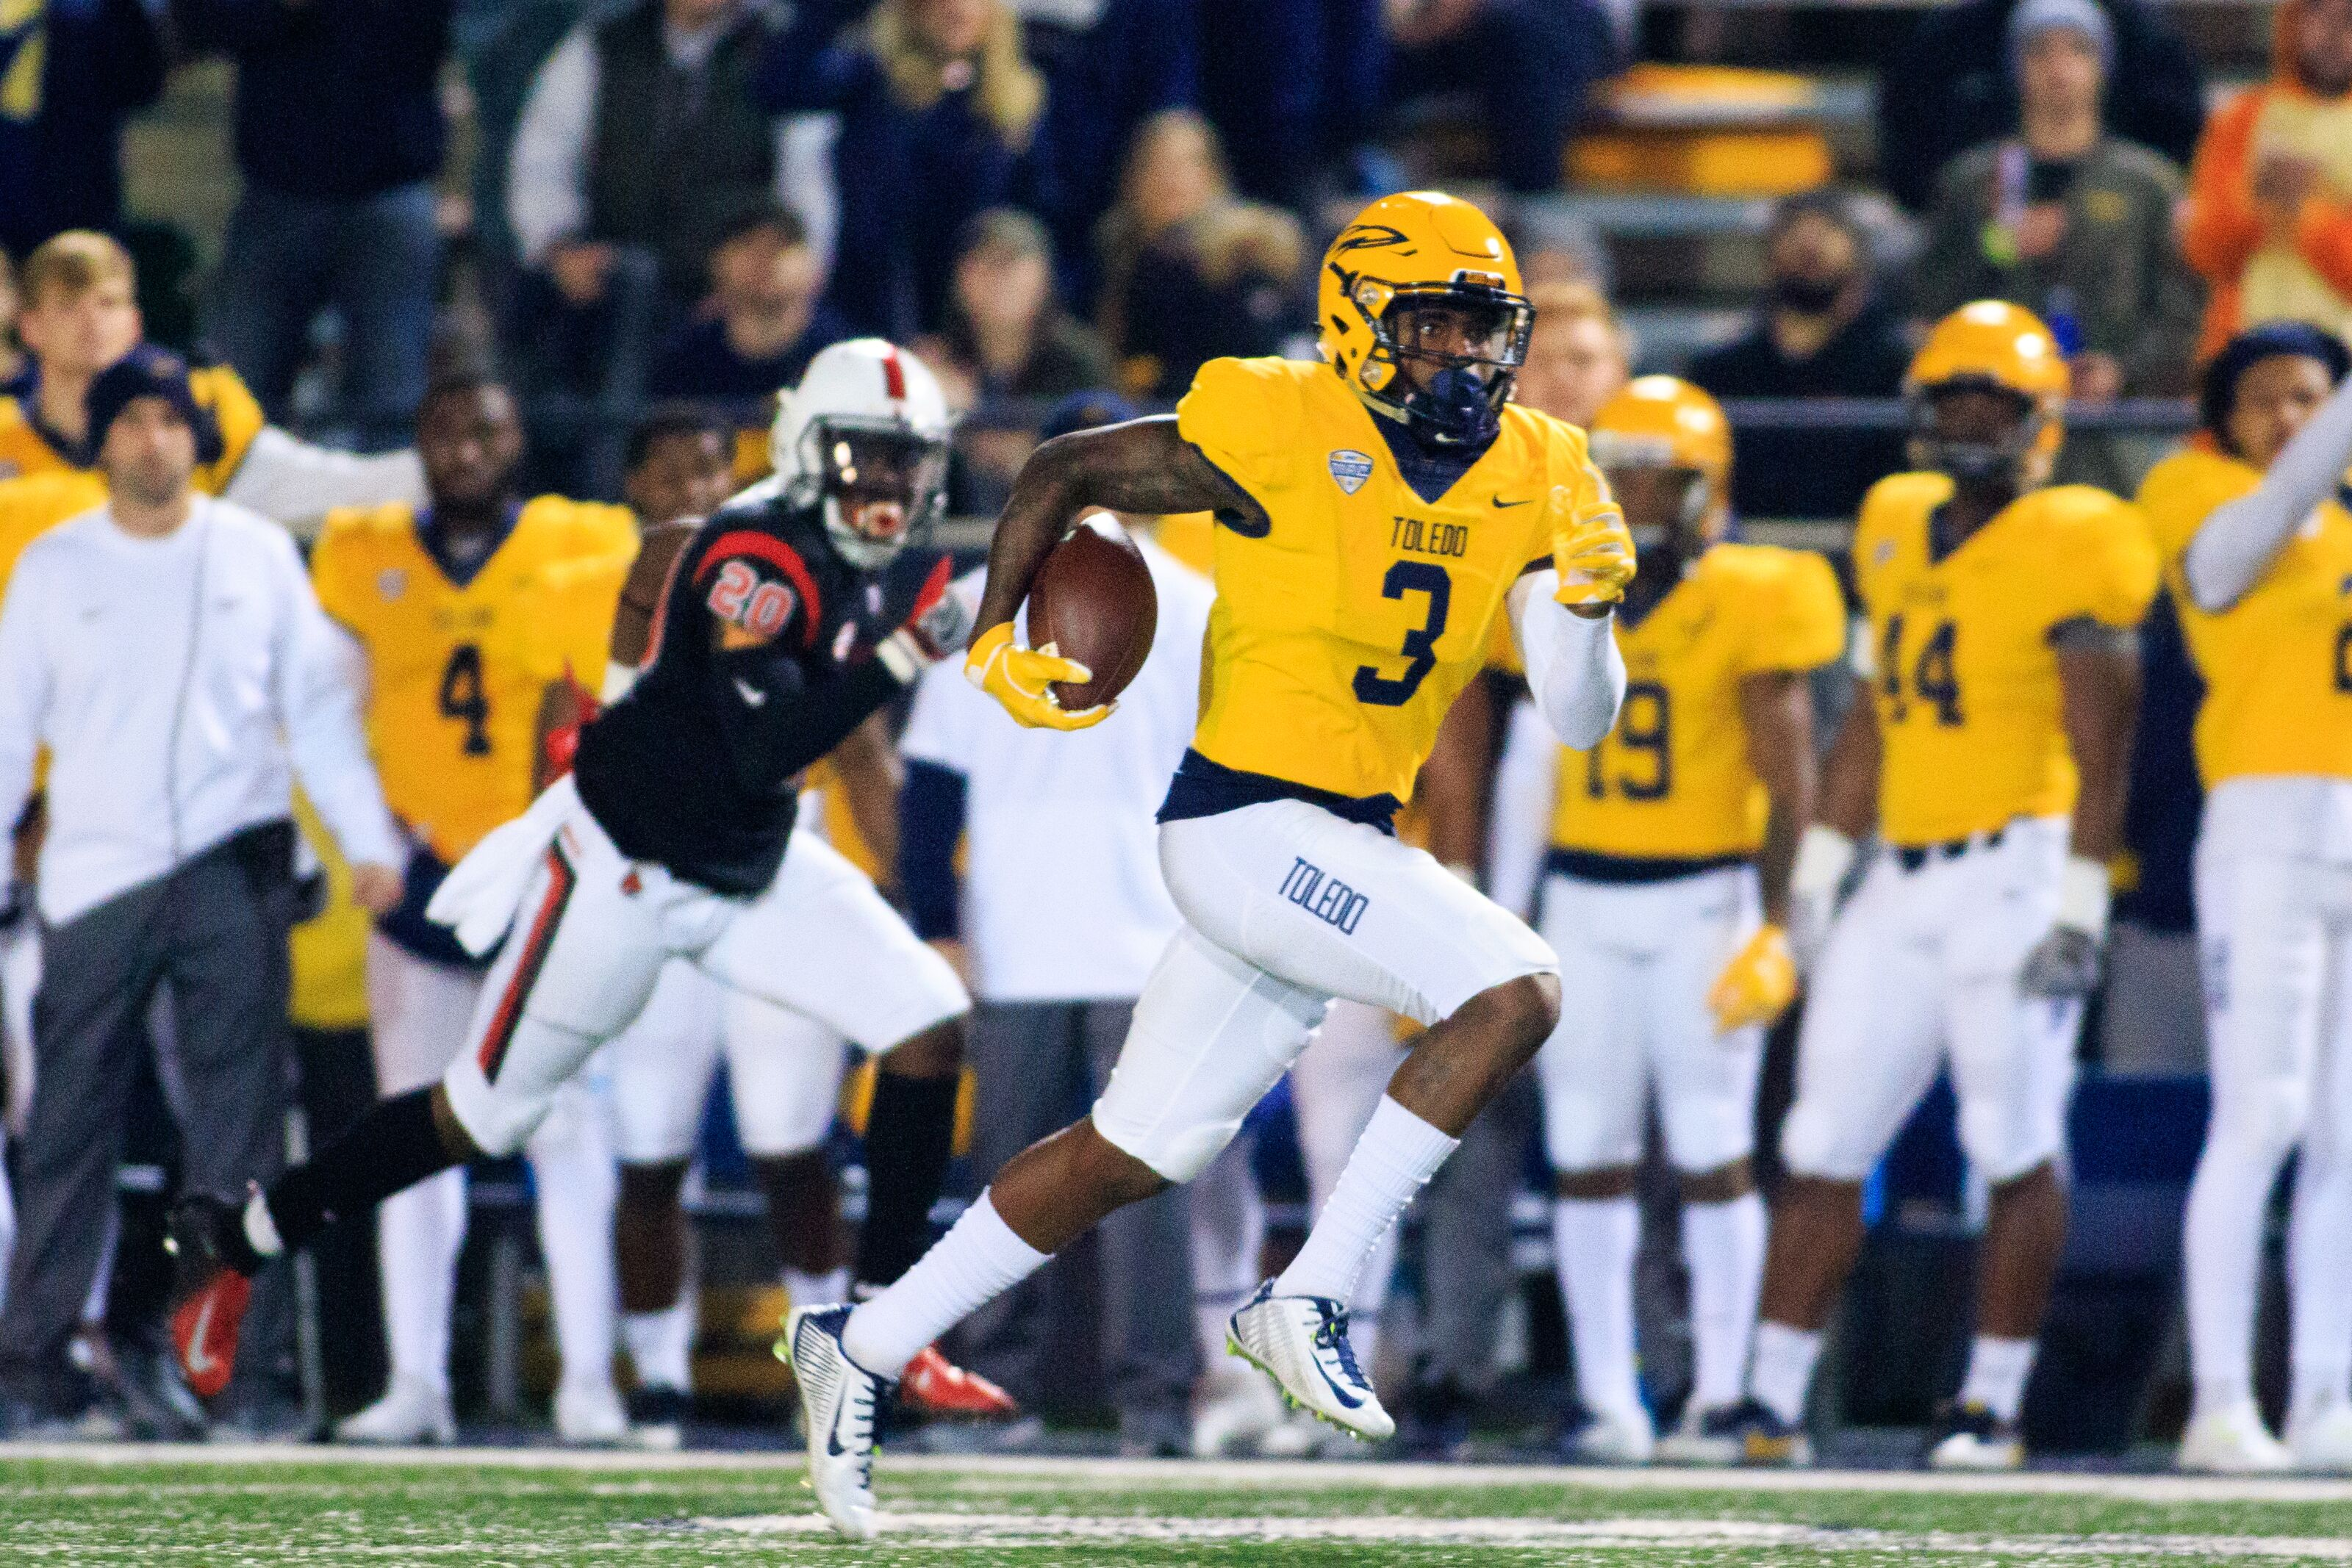 Pittsburgh Steelers: Meet the pick, WR Diontae Johnson